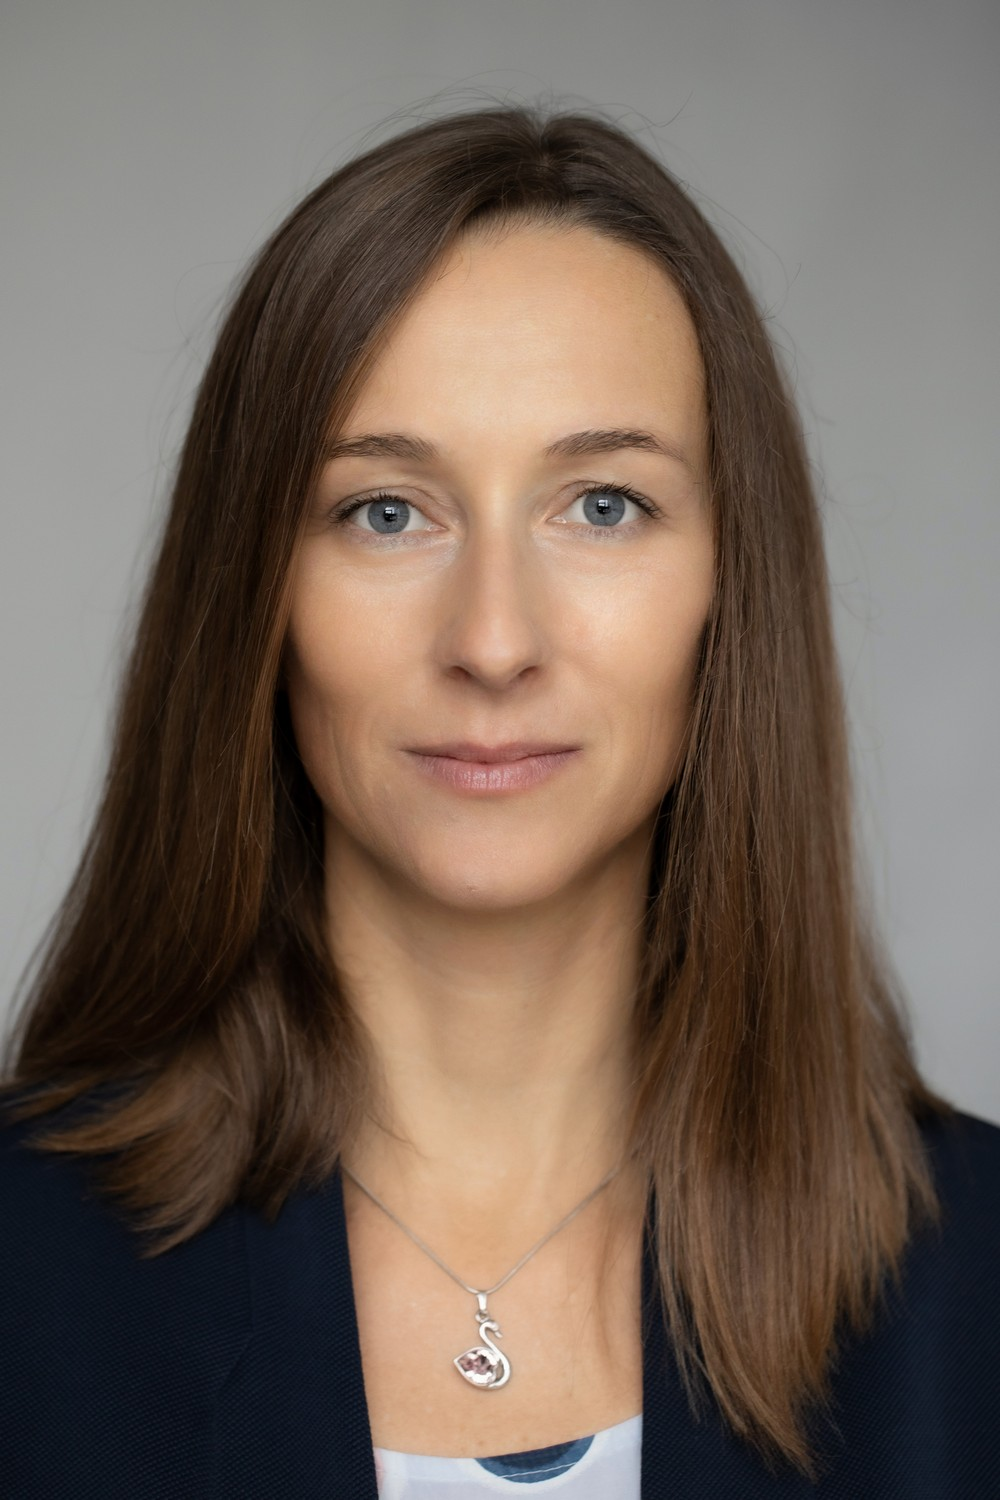 https://www.frequentis.com/karriere/hrprofils/images/Andrea_S.jpg profile picture.